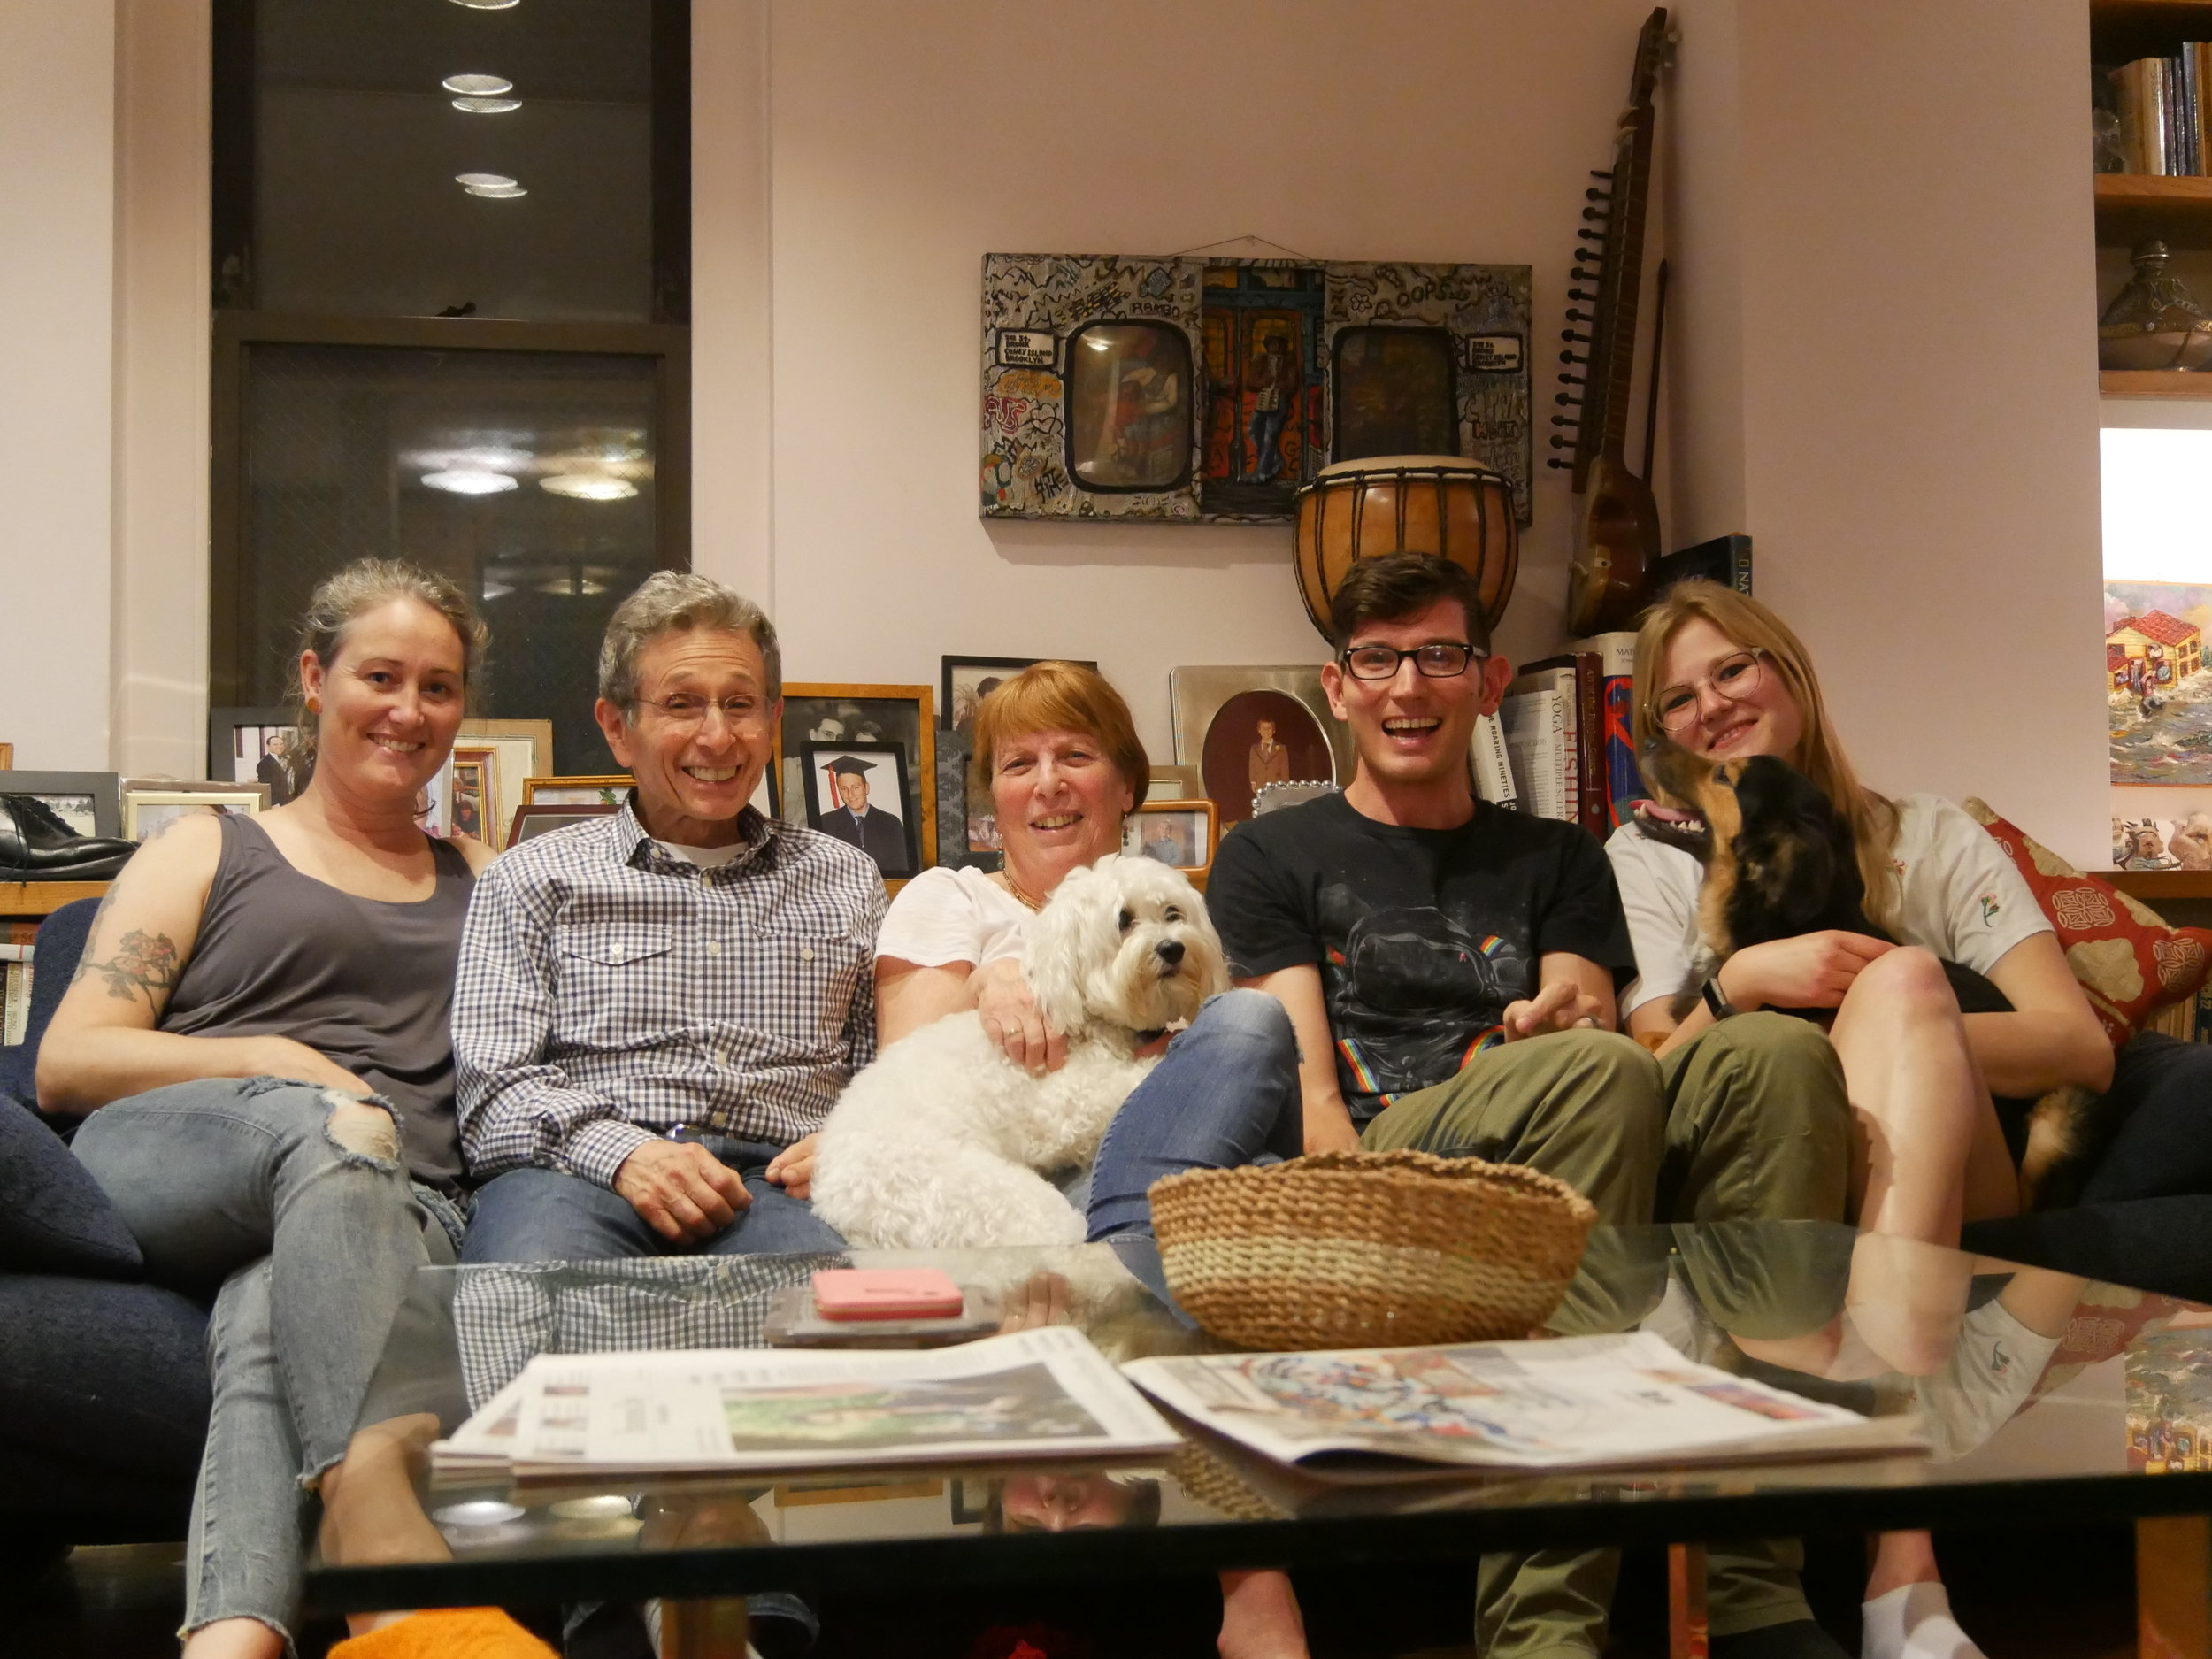 The family! L-R Sam, Loren, Carol and Manny, Zev, Rachel and Argos